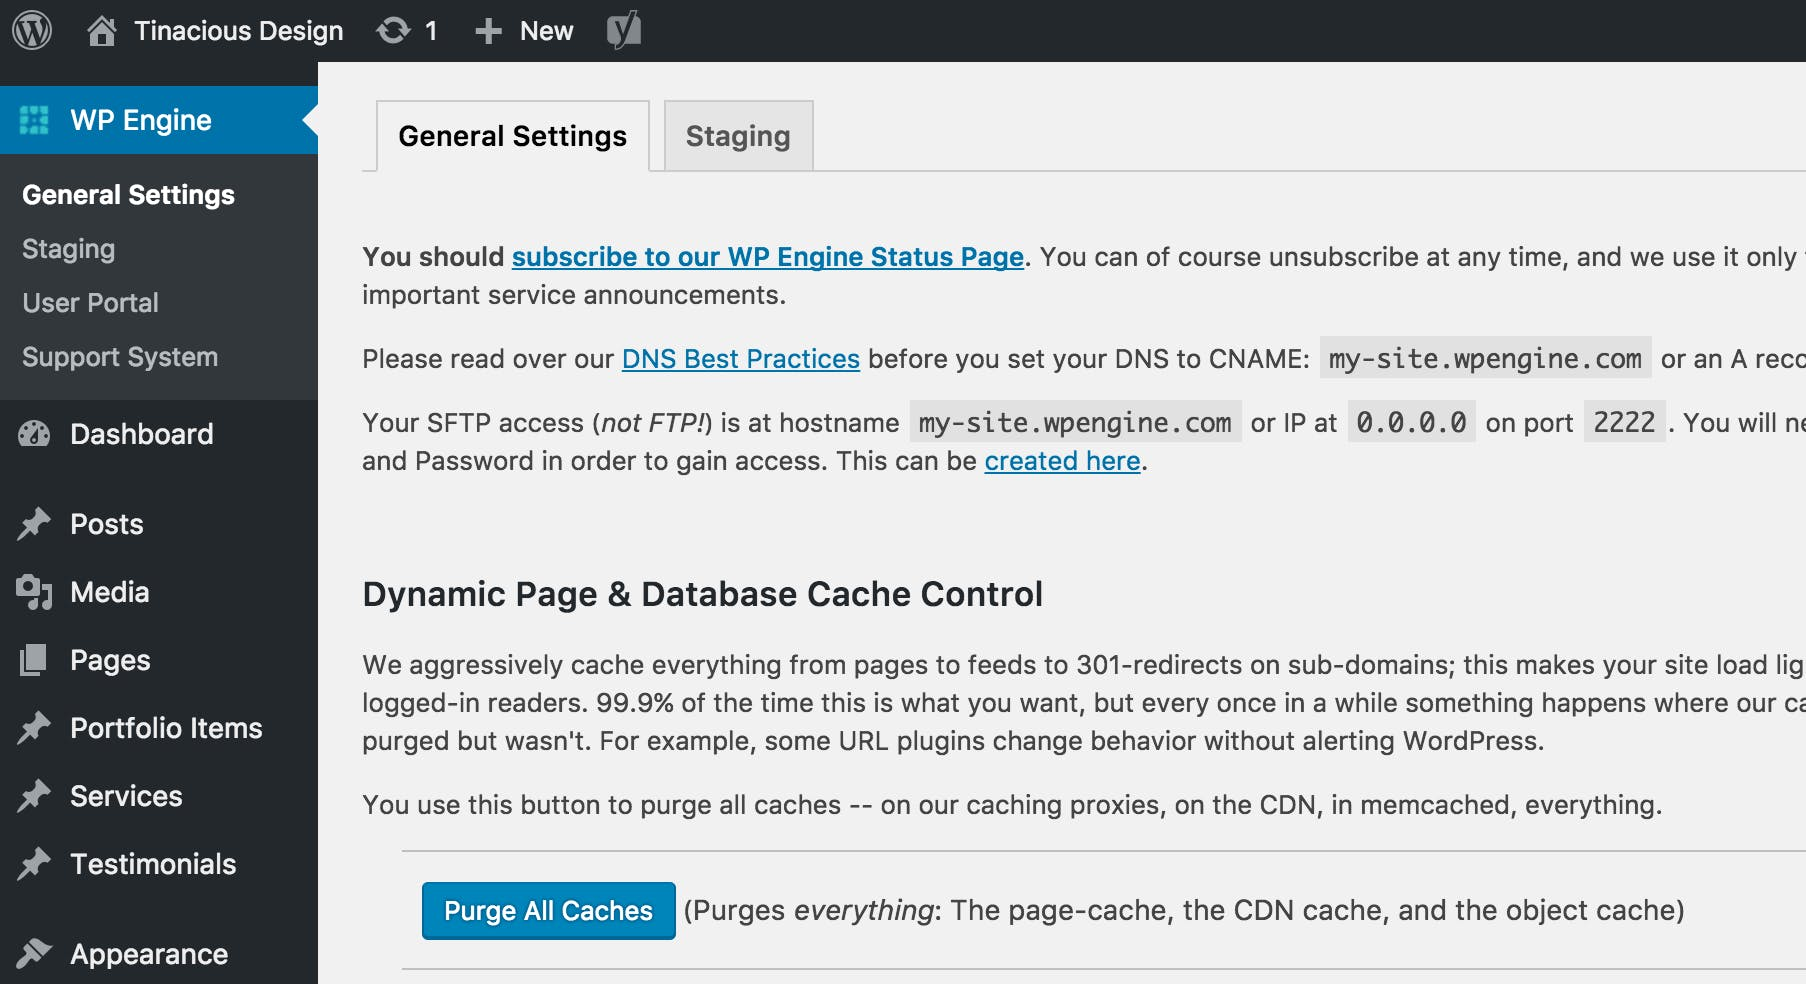 Clear cache on WP Engine using the WP Engine Purge All Caches button